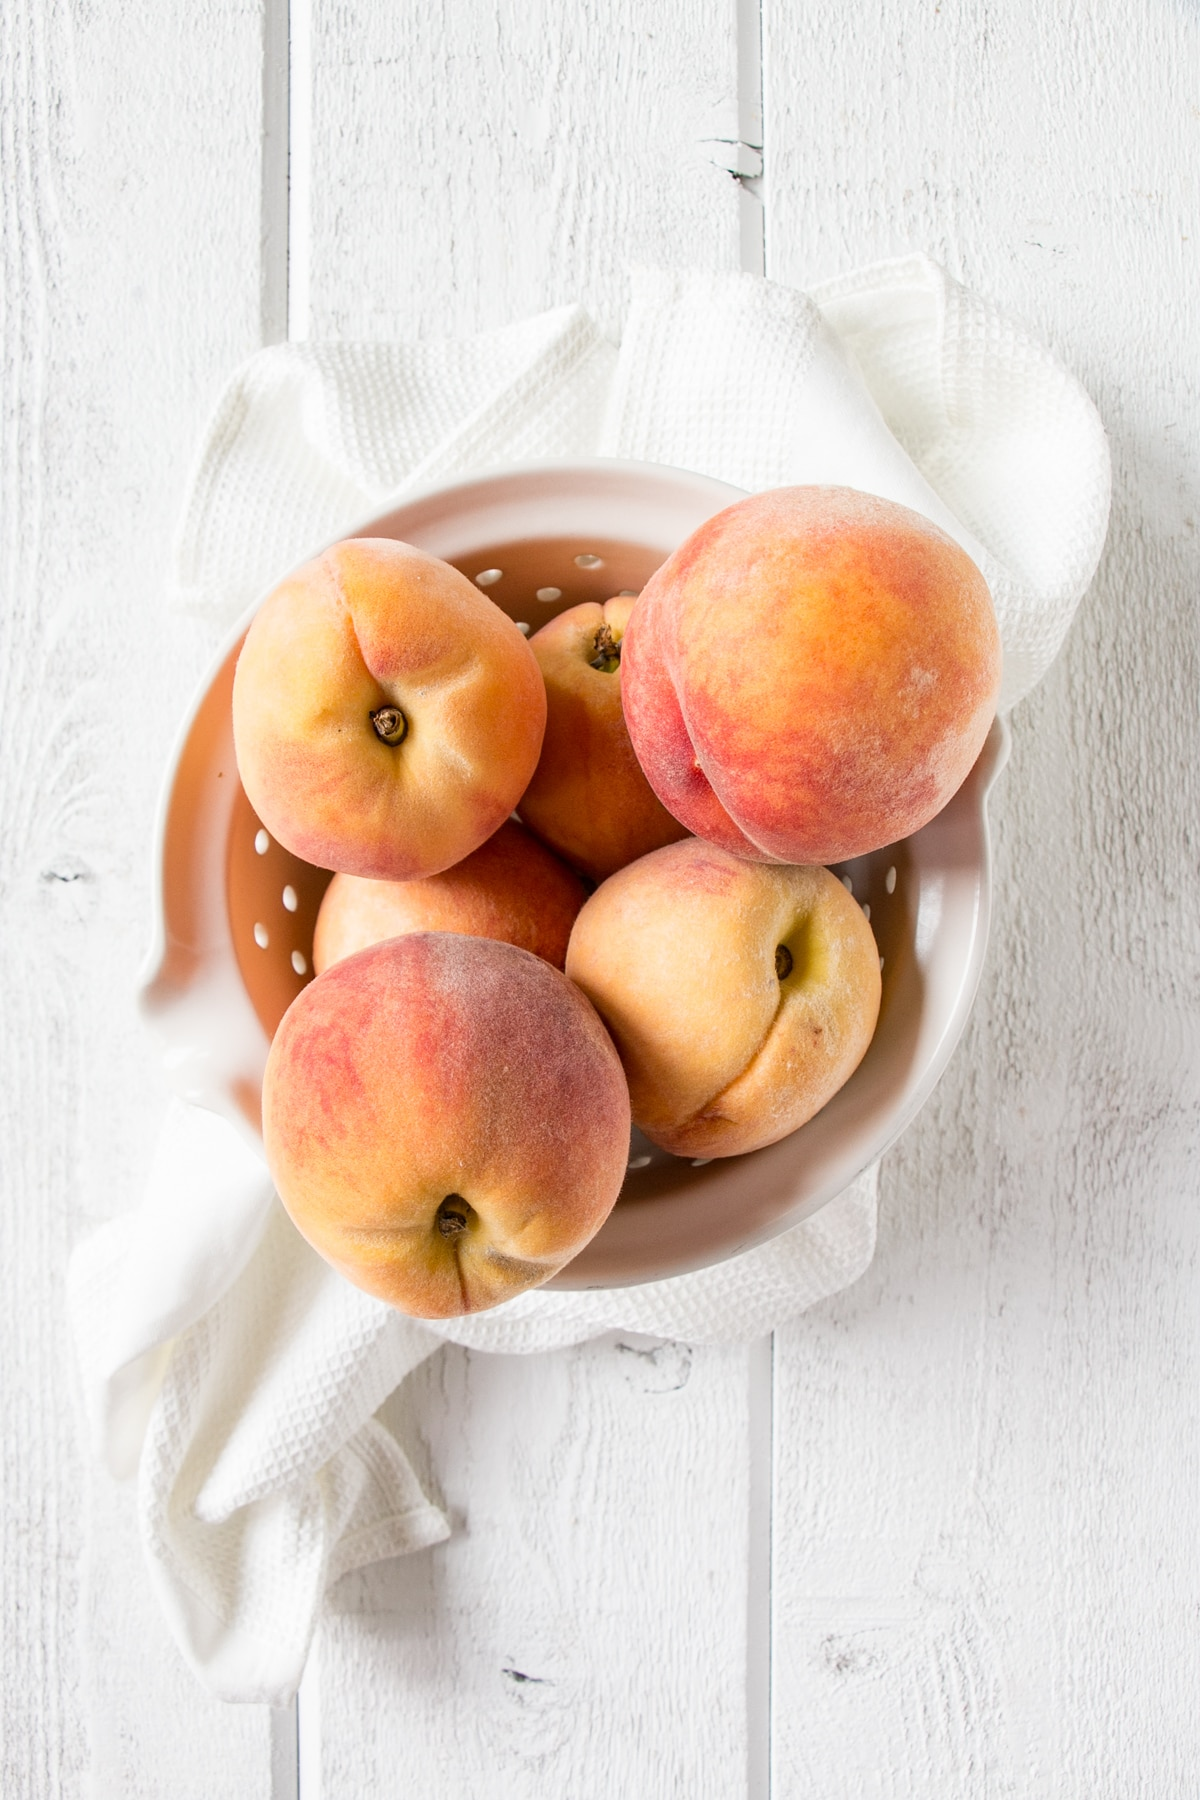 Freestone peaches in a white bowl with a white background.